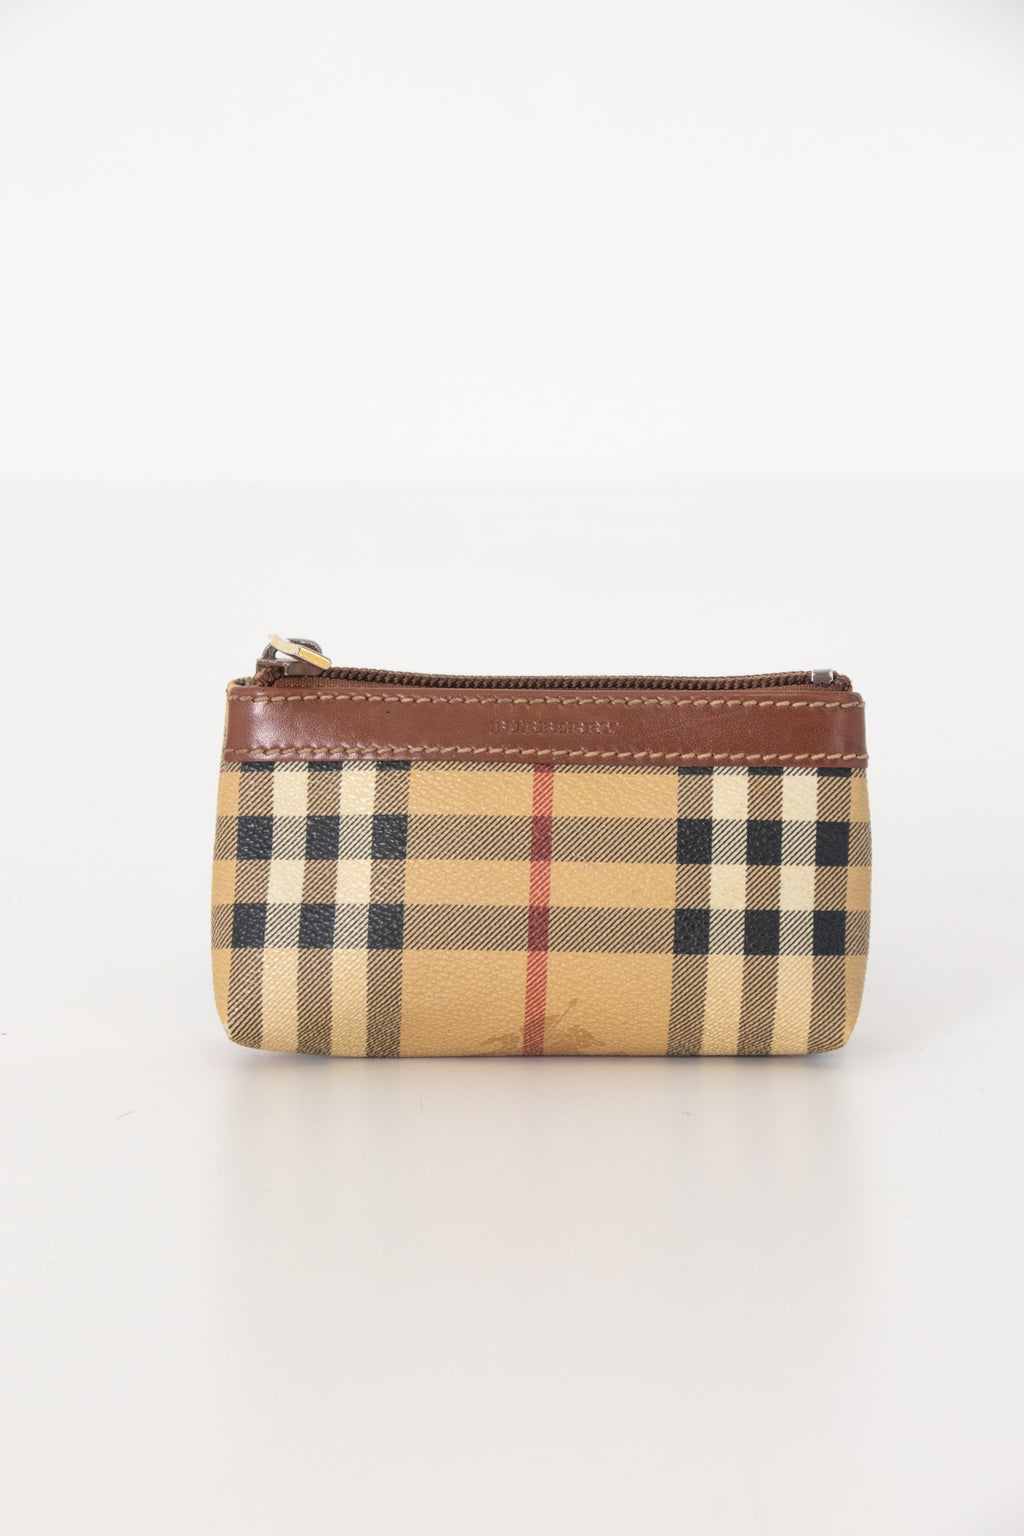 Burberry Coin Purse